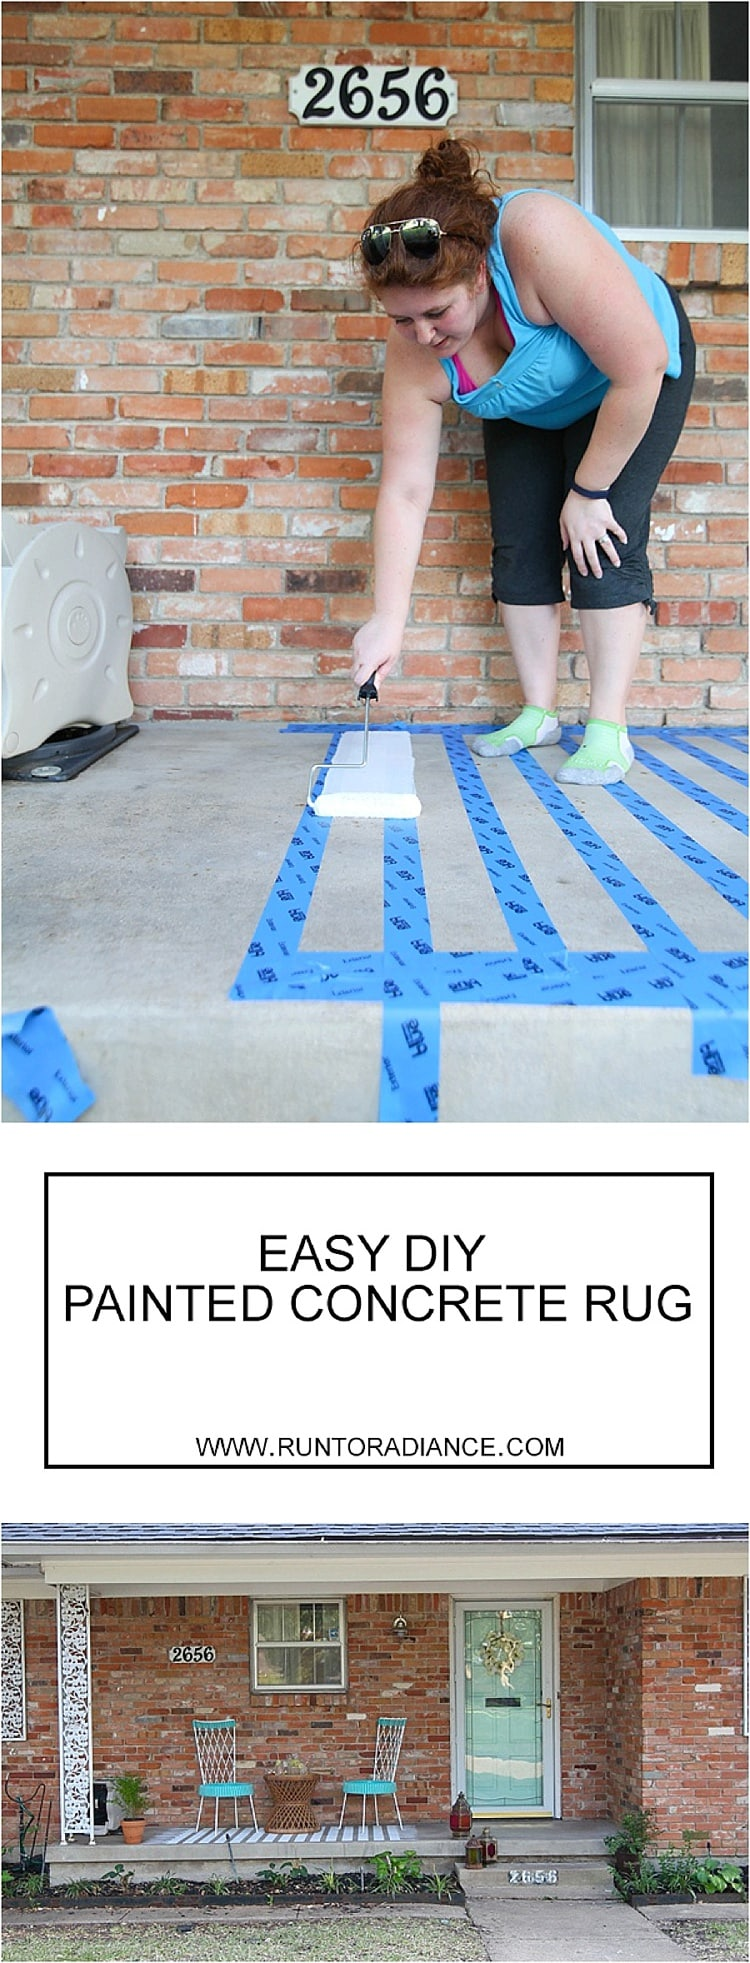 This is an easy way to do a porch makeover. Painting concrete is a fast, cheap way to update any concrete porch!